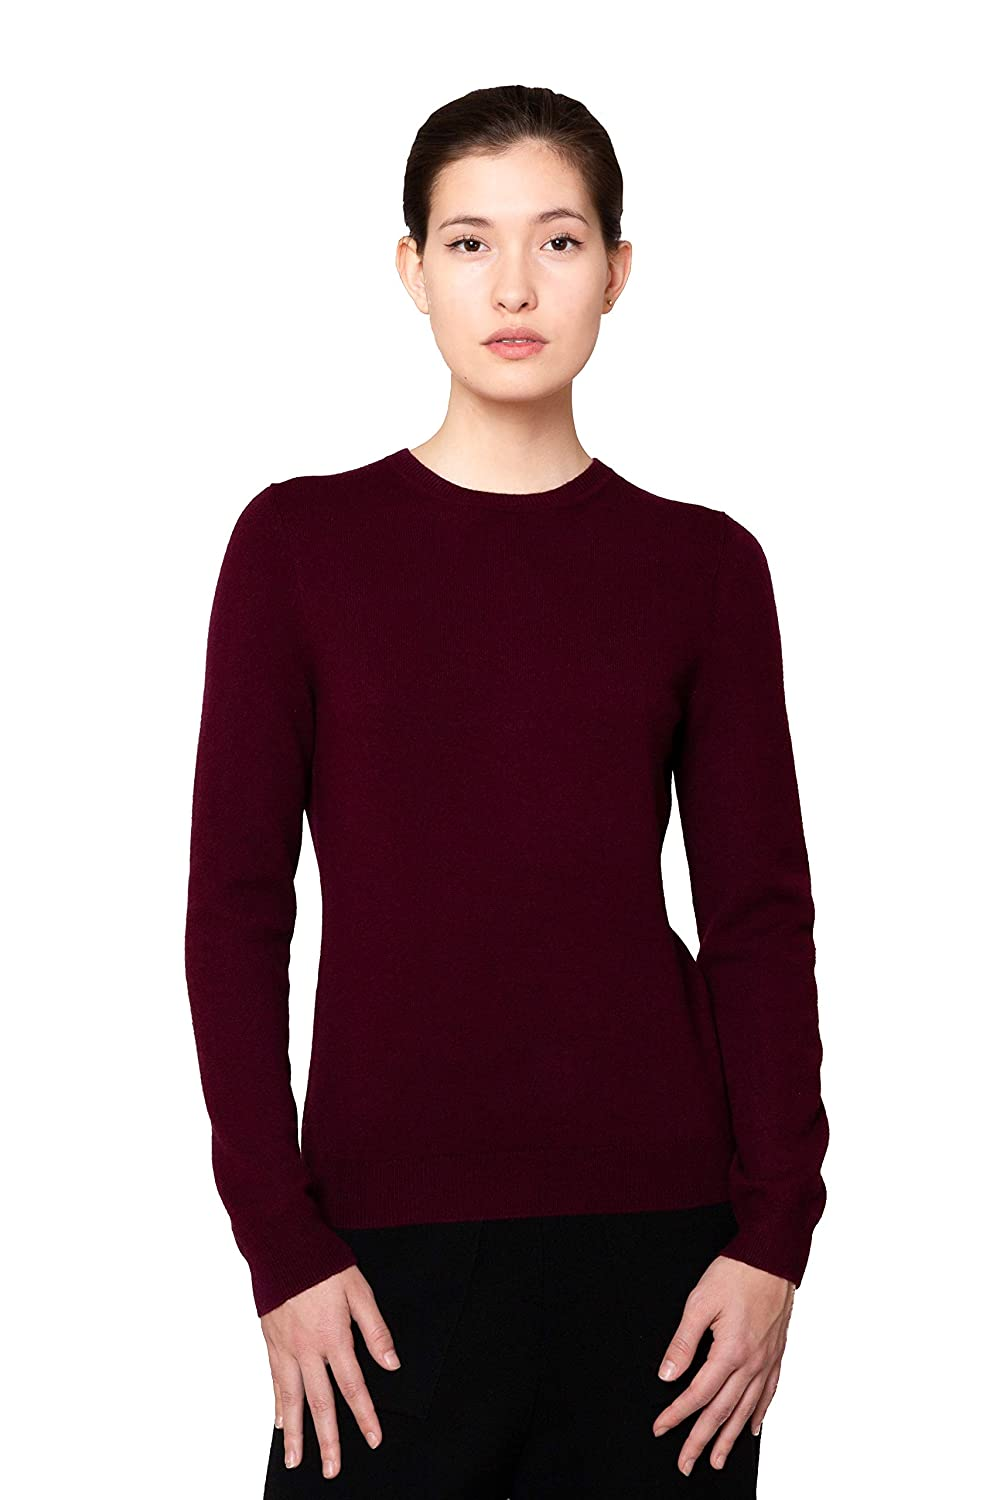 cb4a4ccf6a9 Goyo Cashmere Women s 100% Pure Cashmere Sweater - Long Sleeve Crewneck  Pullover